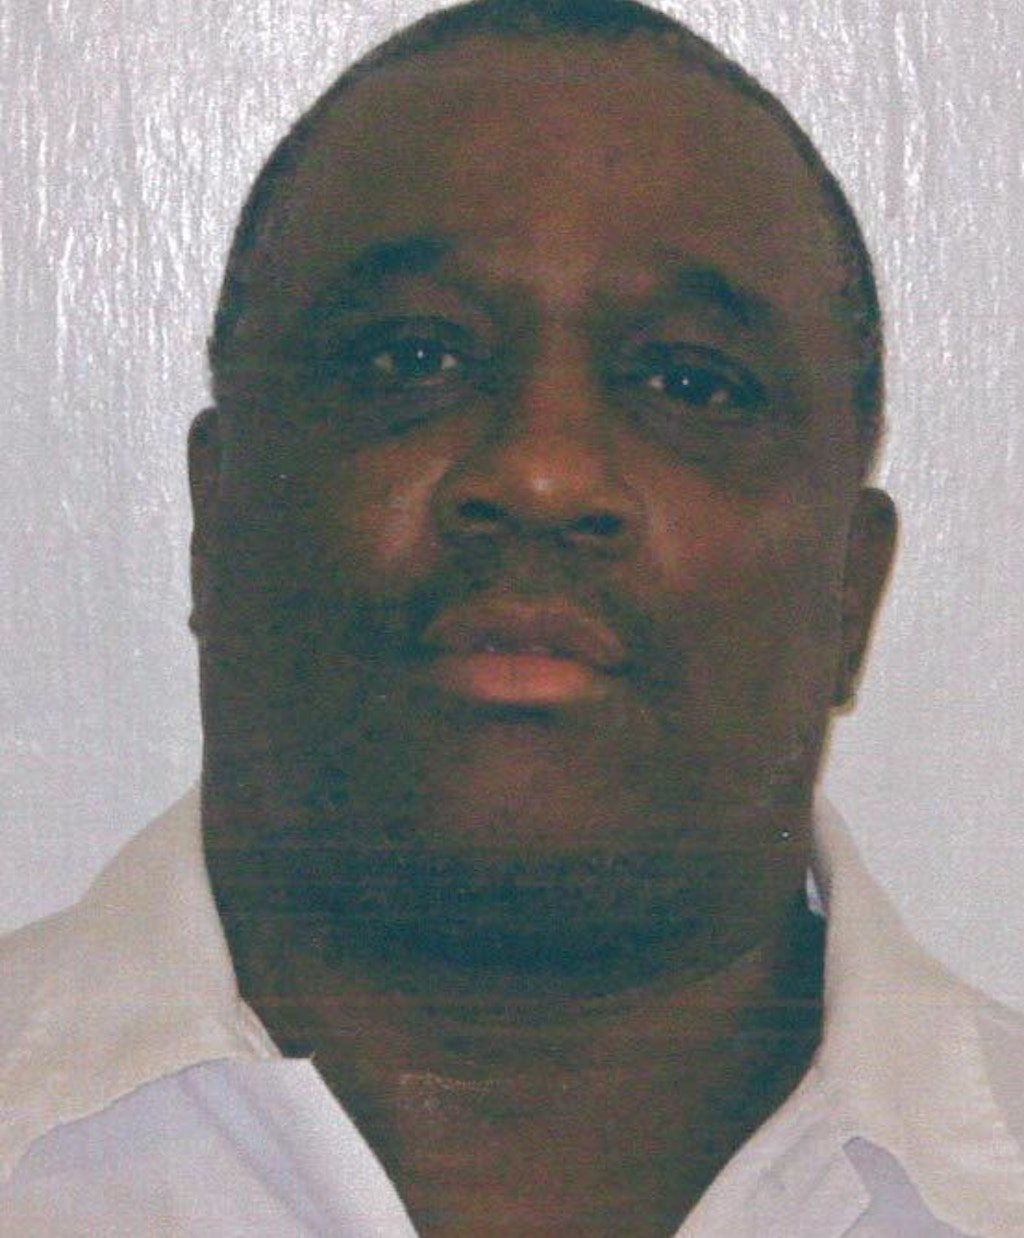 He May Be Innocent and Intellectually Disabled, But Rocky Myers Faces Execution in Alabama